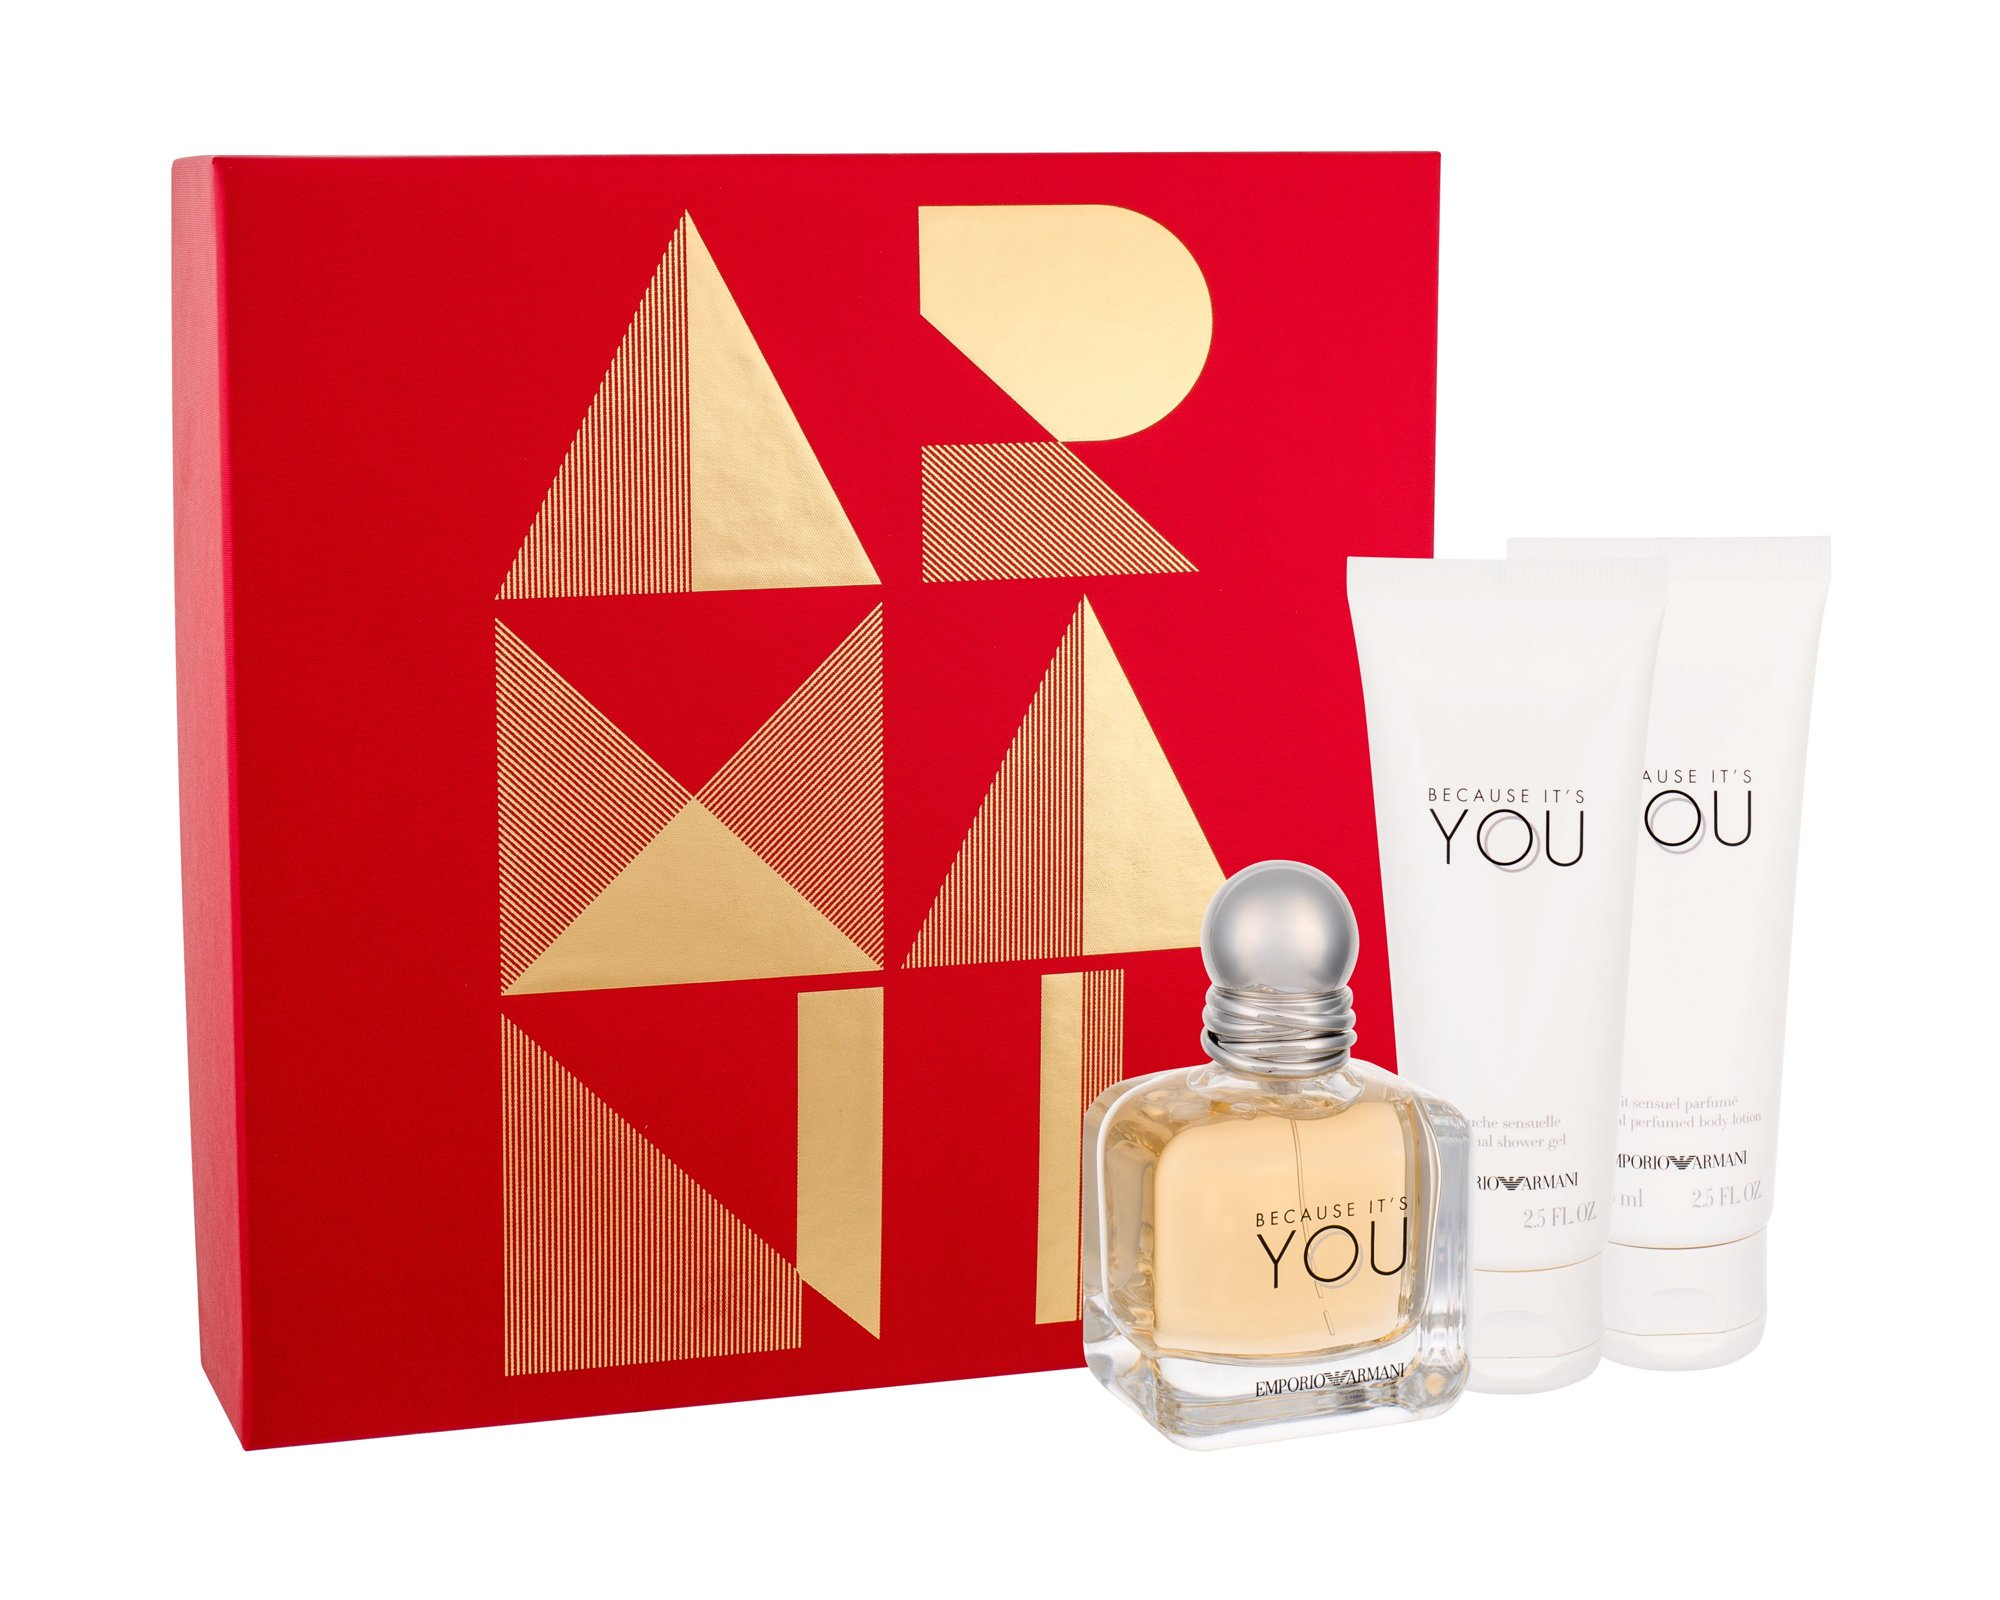 Giorgio Armani Emporio Armani Because It´s You EDP 50ml